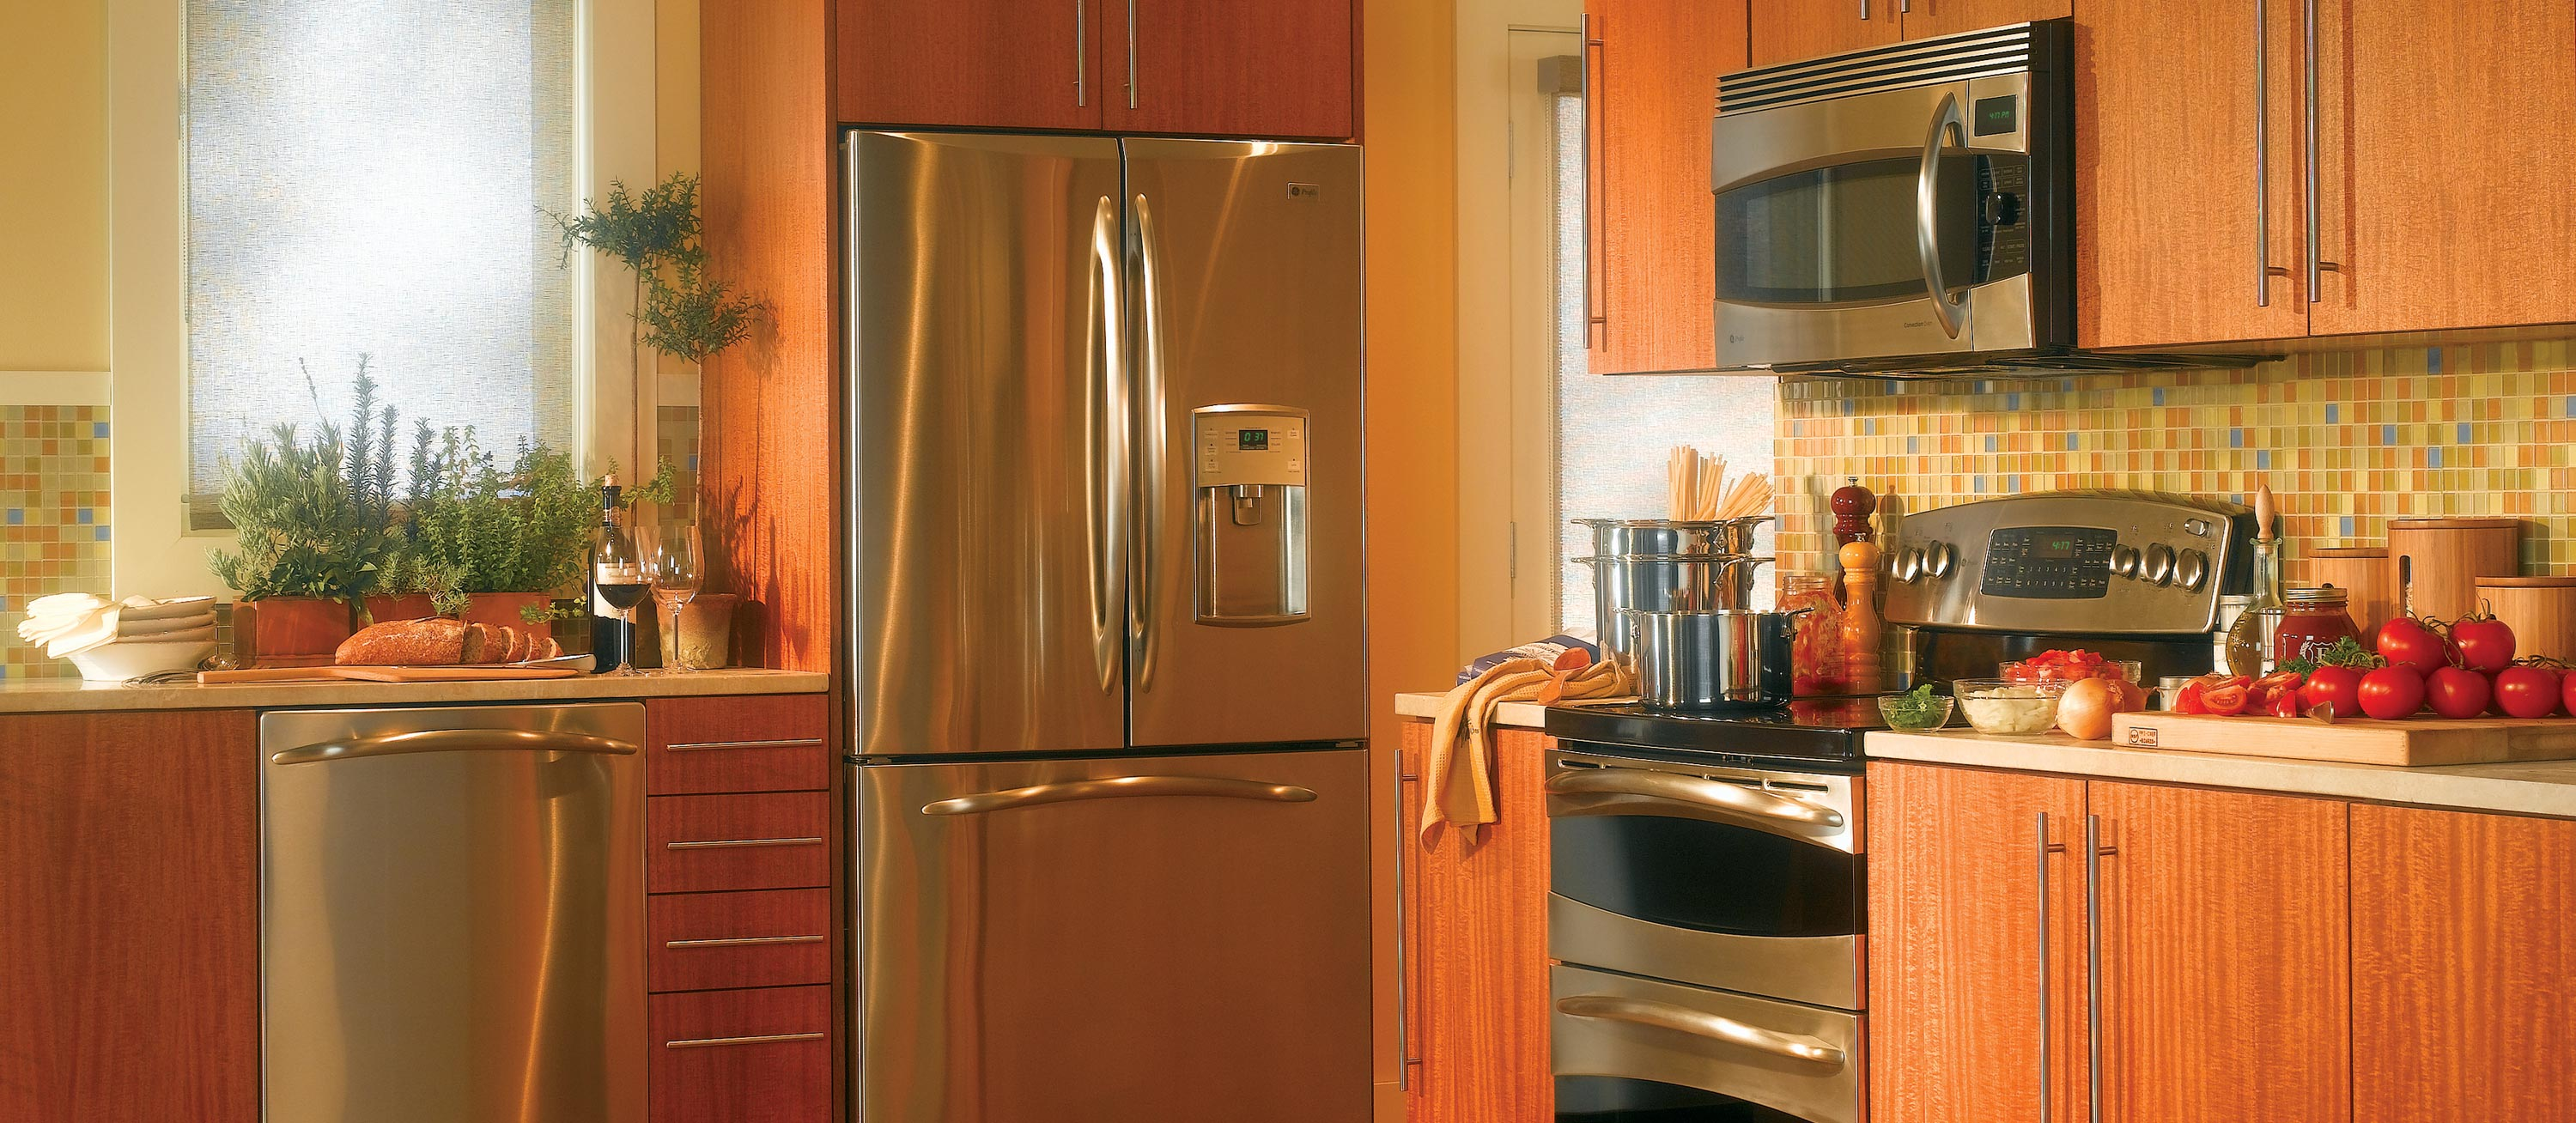 appliances for small kitchens kitchen floor options spaces large and beautiful